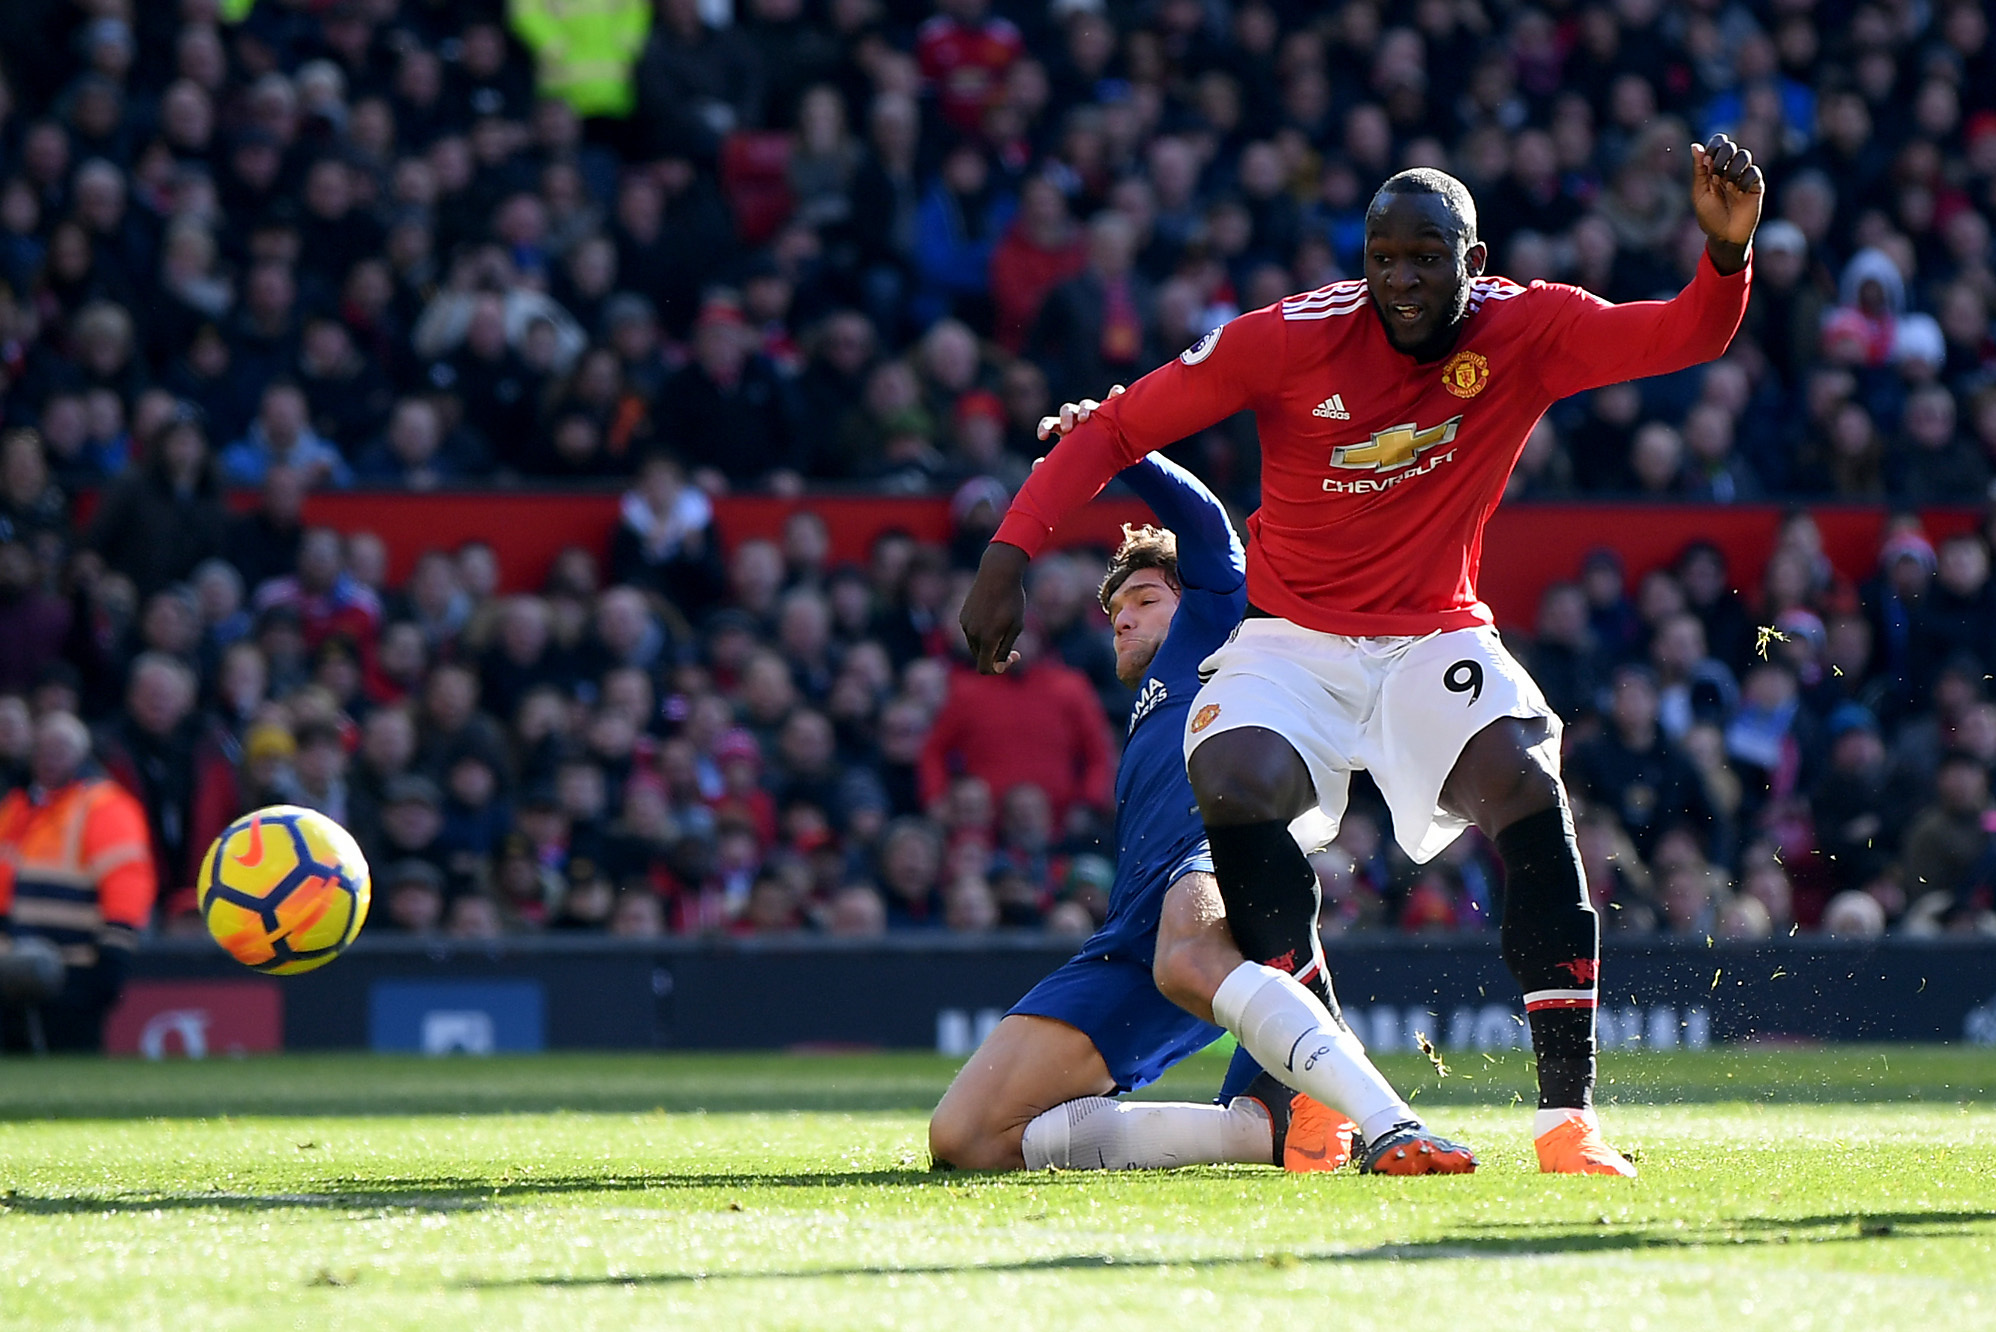 Romelu Lukaku Says He Deserves More Respect For Goal Record After Chelsea Win Bleacher Report Latest News Videos And Highlights